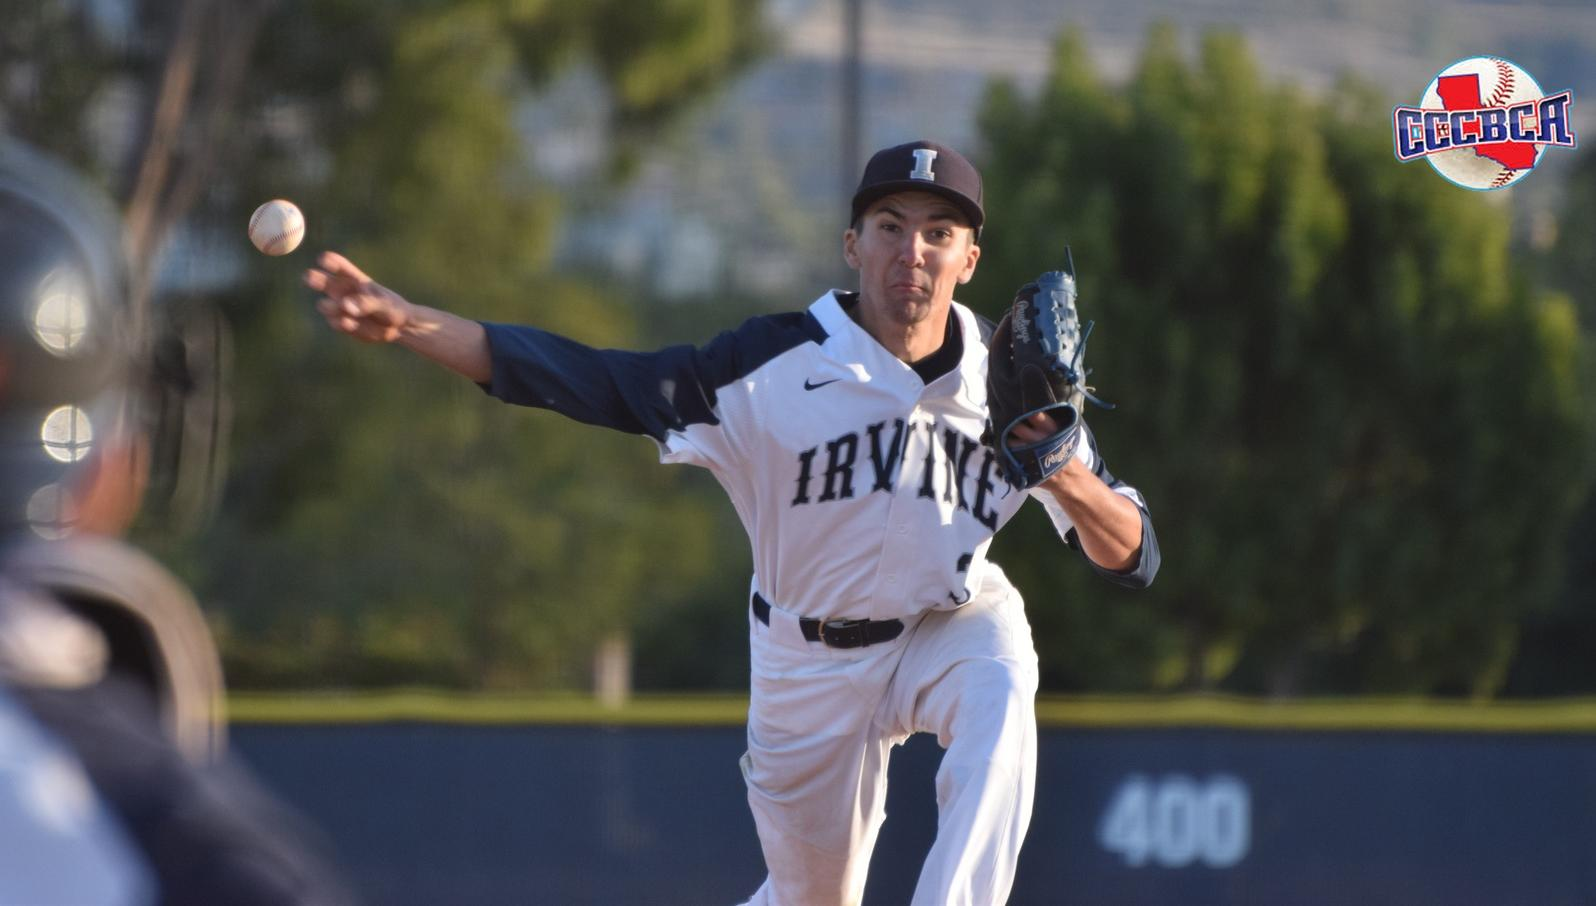 Pitcher Noah Bradford named first team CCCBCA All-So. Cal.